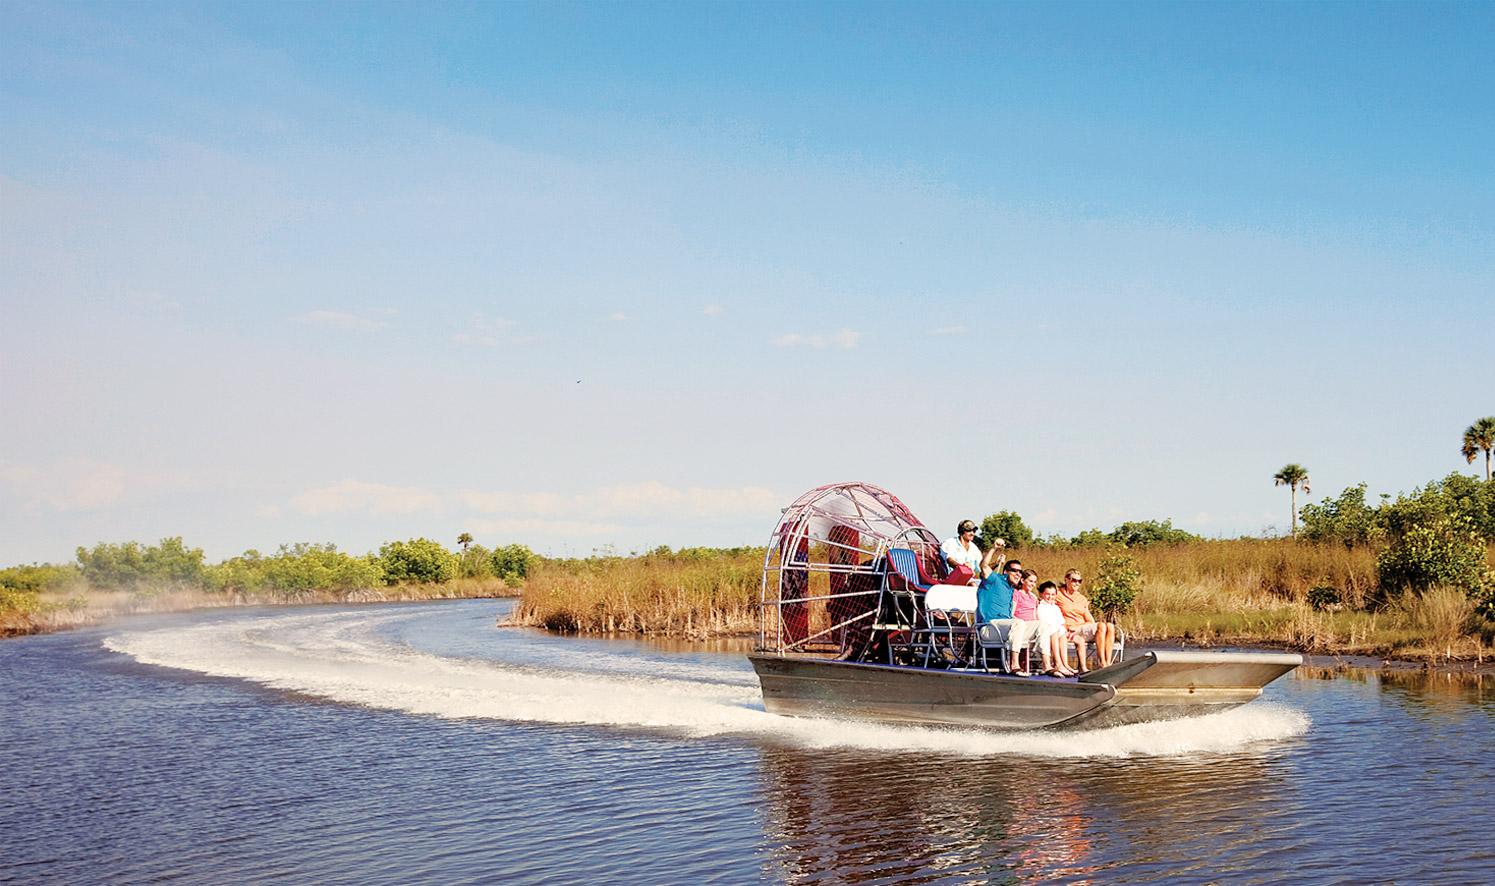 Marco Island Everglades Airboat Tours